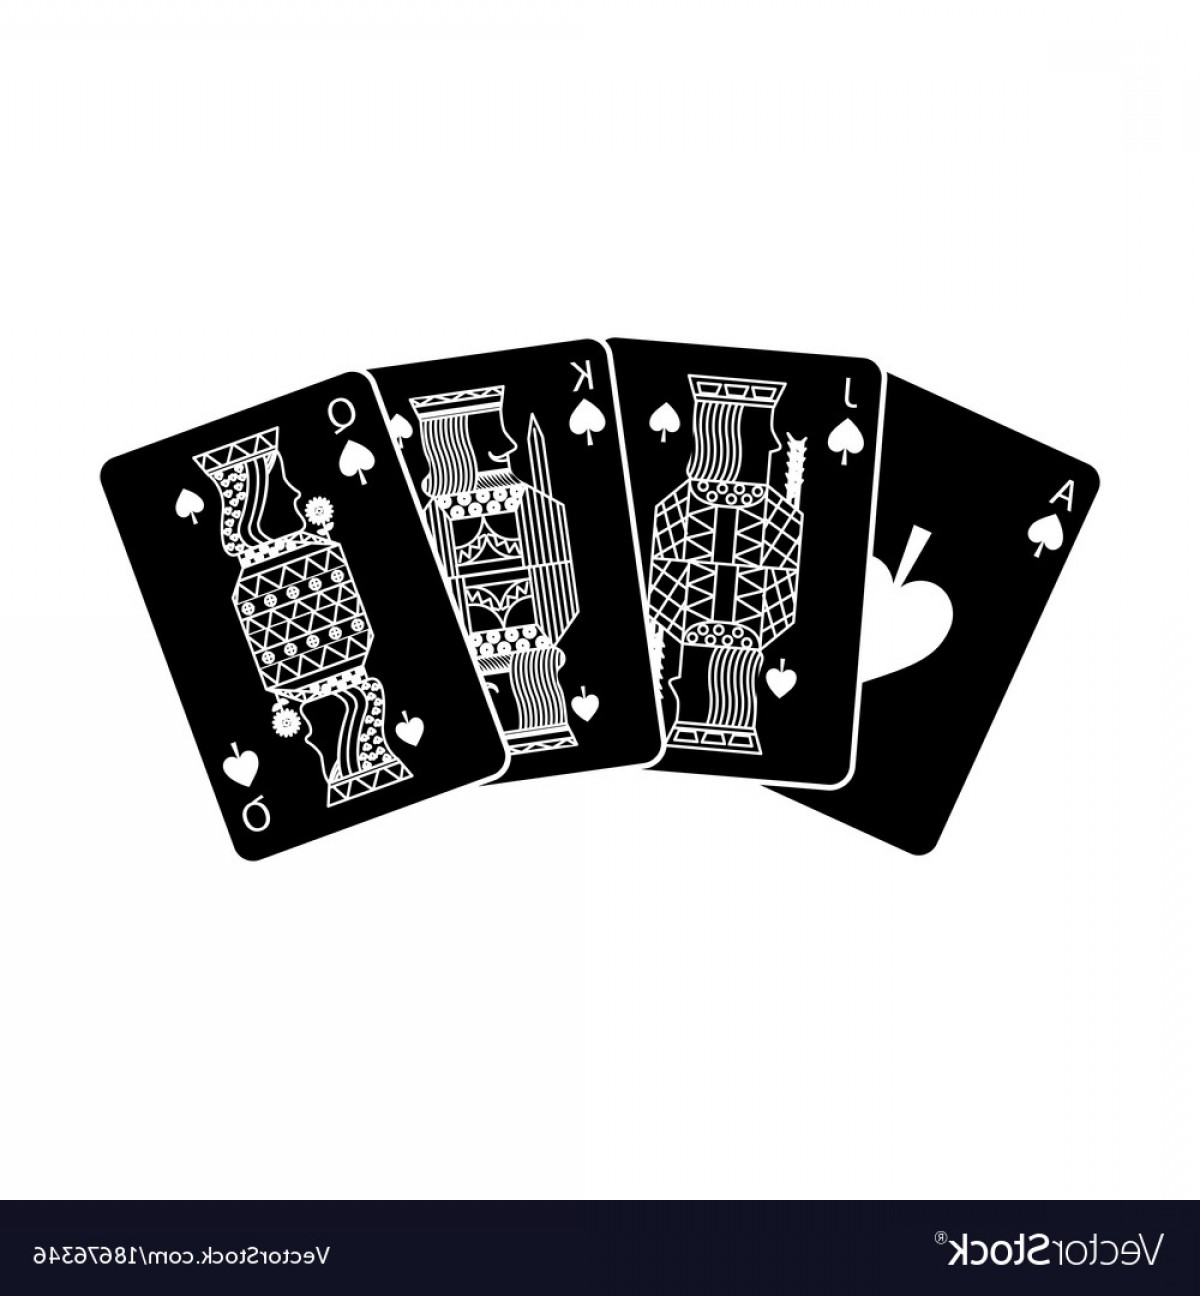 Playing Card Design Vector Illustration: Poker Playing Cards Ace Jack Queen And King Spade Vector